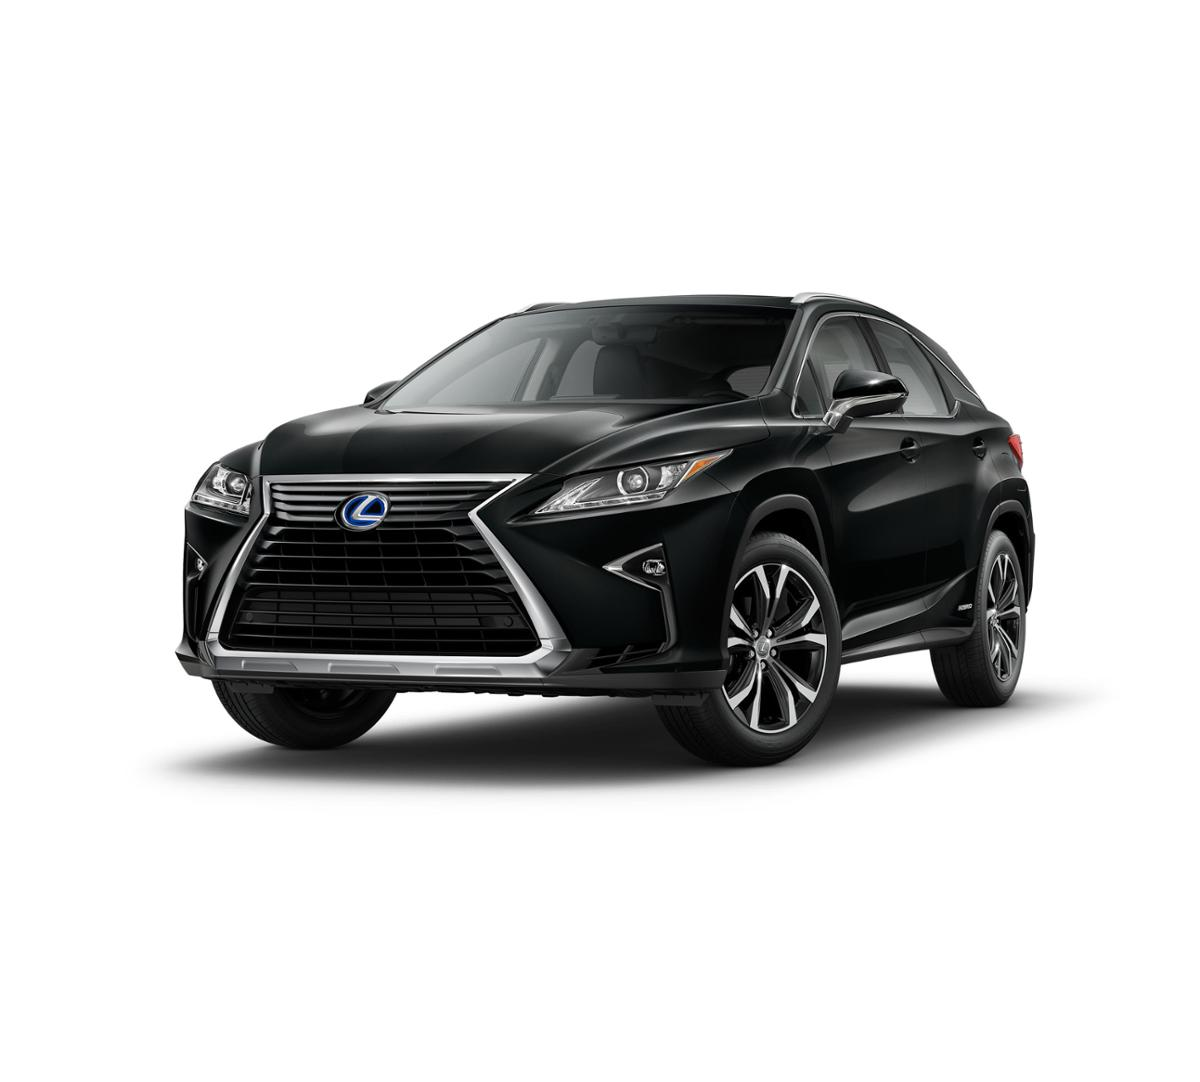 2019 Lexus RX 450h Vehicle Photo in Larchmont, NY 10538